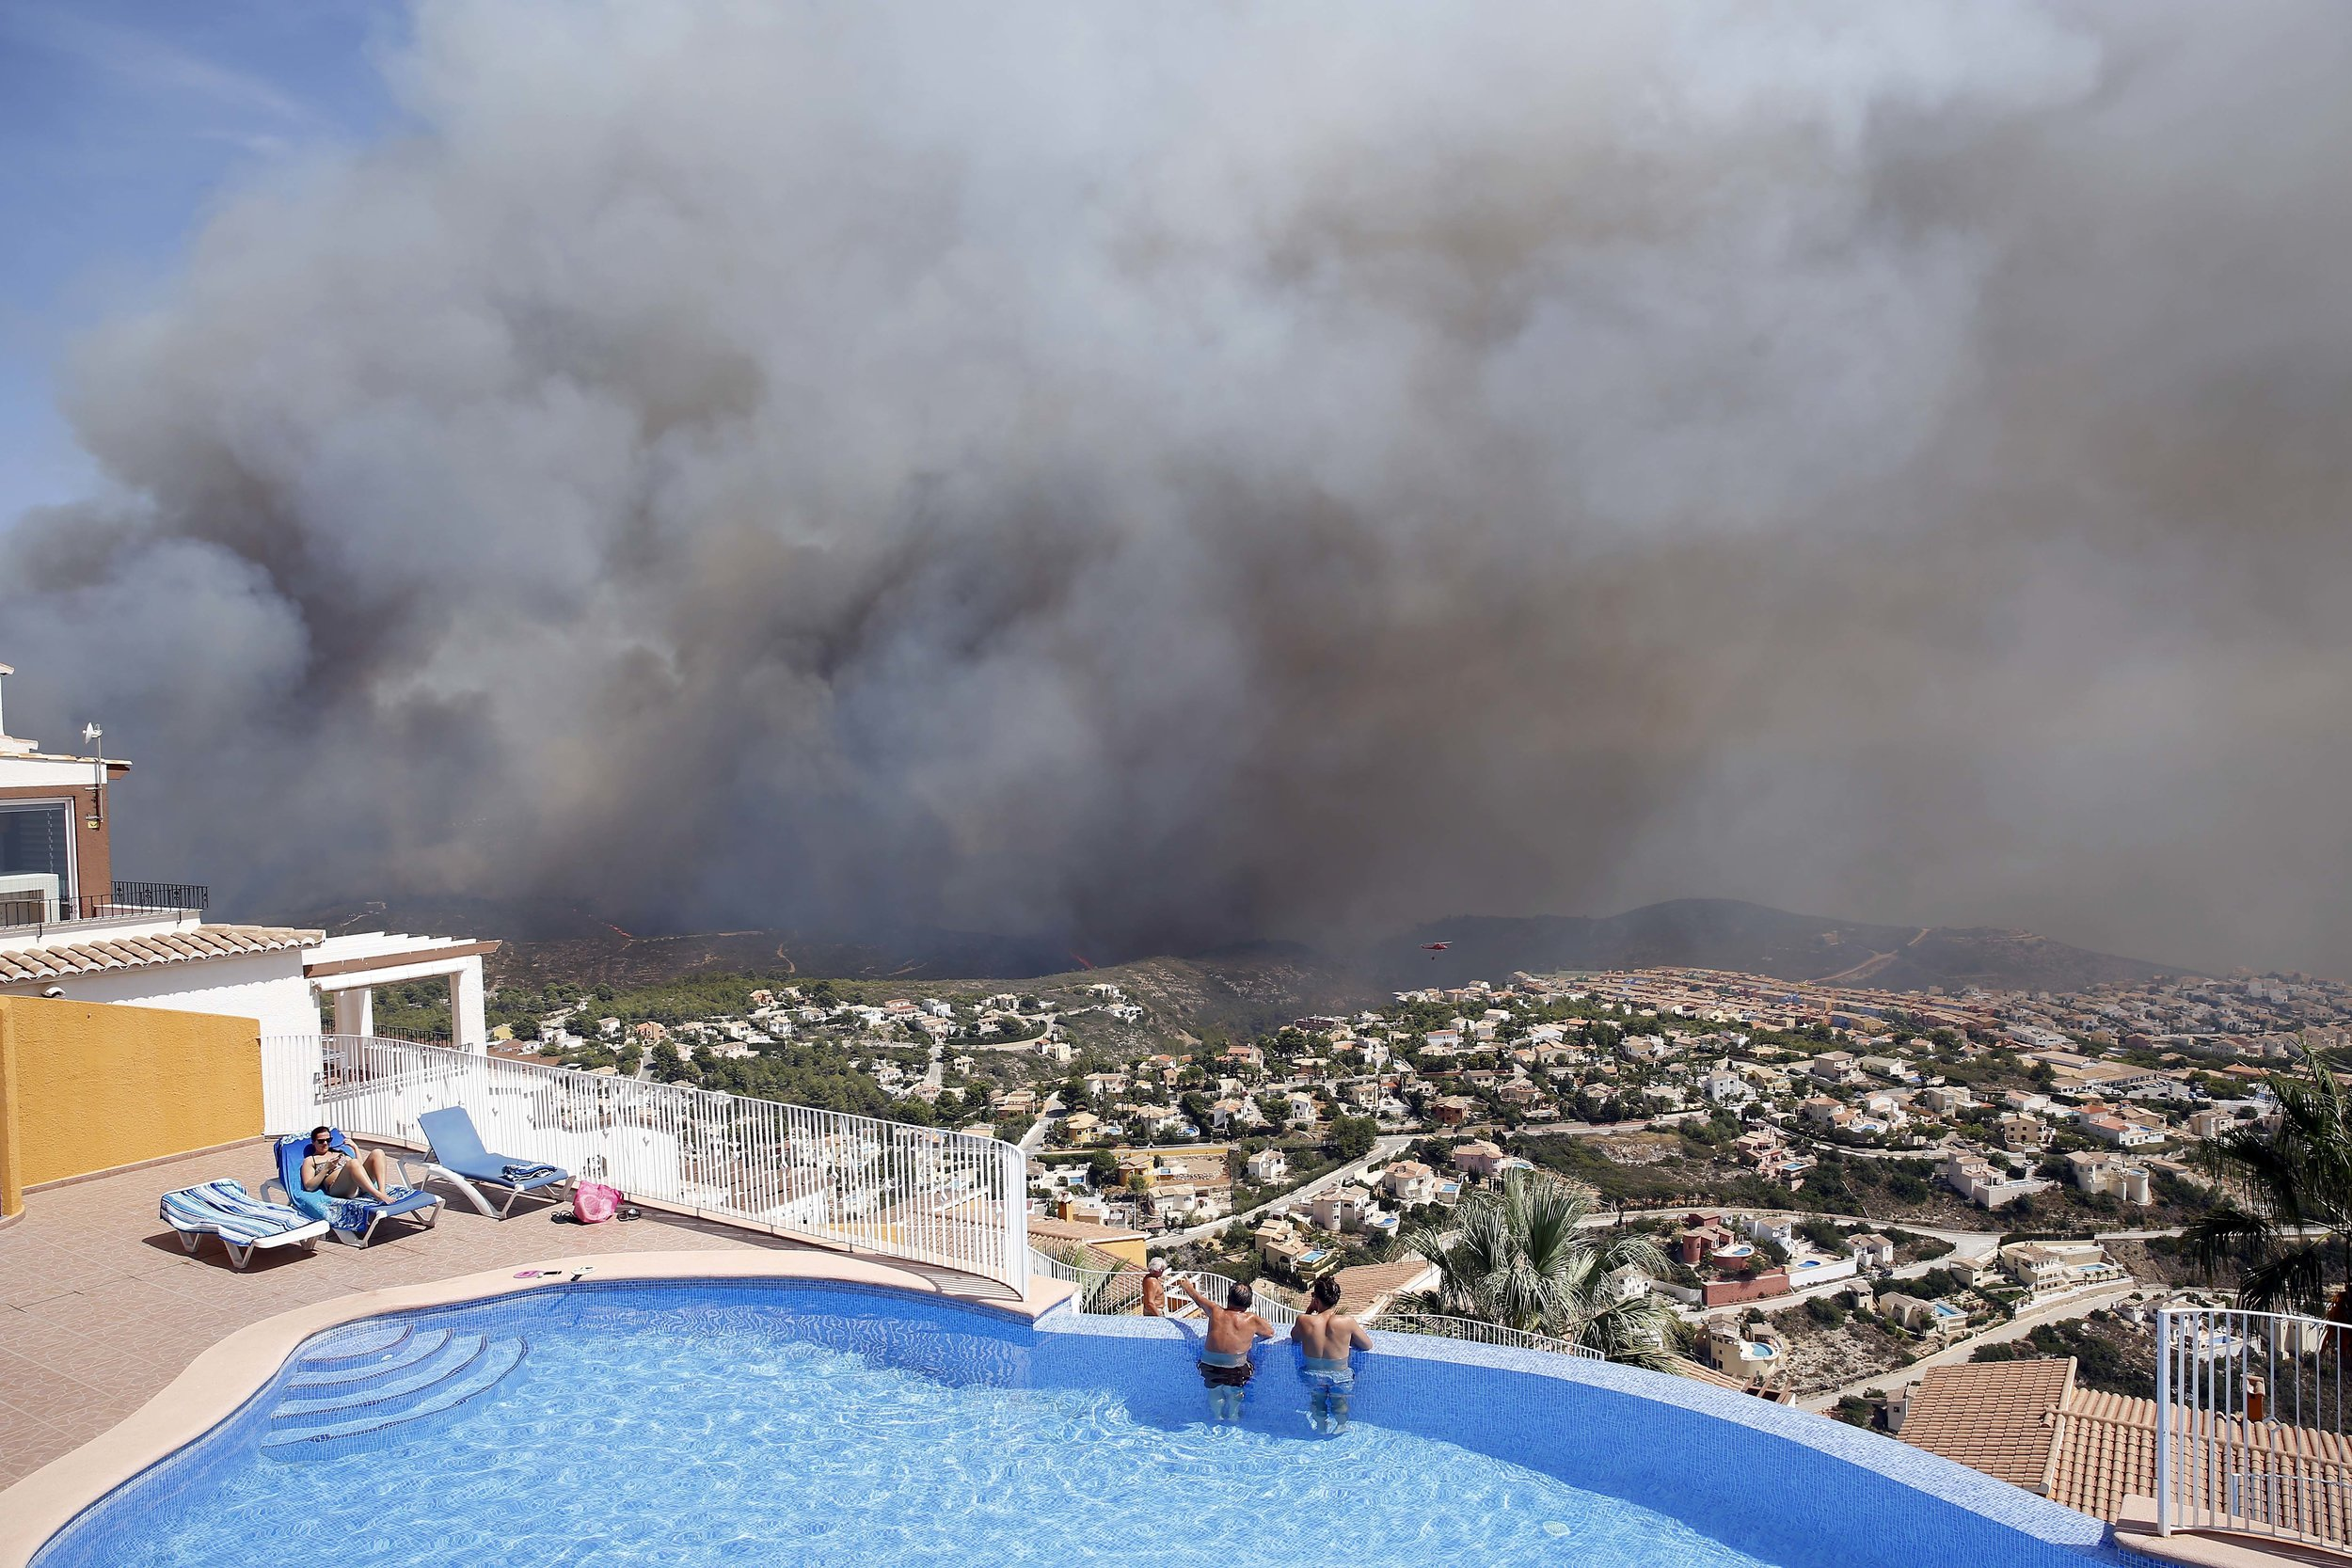 Two men look out from a swimming pool at a wildfire as it burns nearby in eastern Spain. Scientists say southern Spain will become desert and deciduous forests will vanish from much of the Mediterranean basin unless global warming is reined in sharply. They concluded that any warming above 2 degrees Celsius would cause changes not seen in 10,000 years. (AP Photo/Alberto Saiz, file)